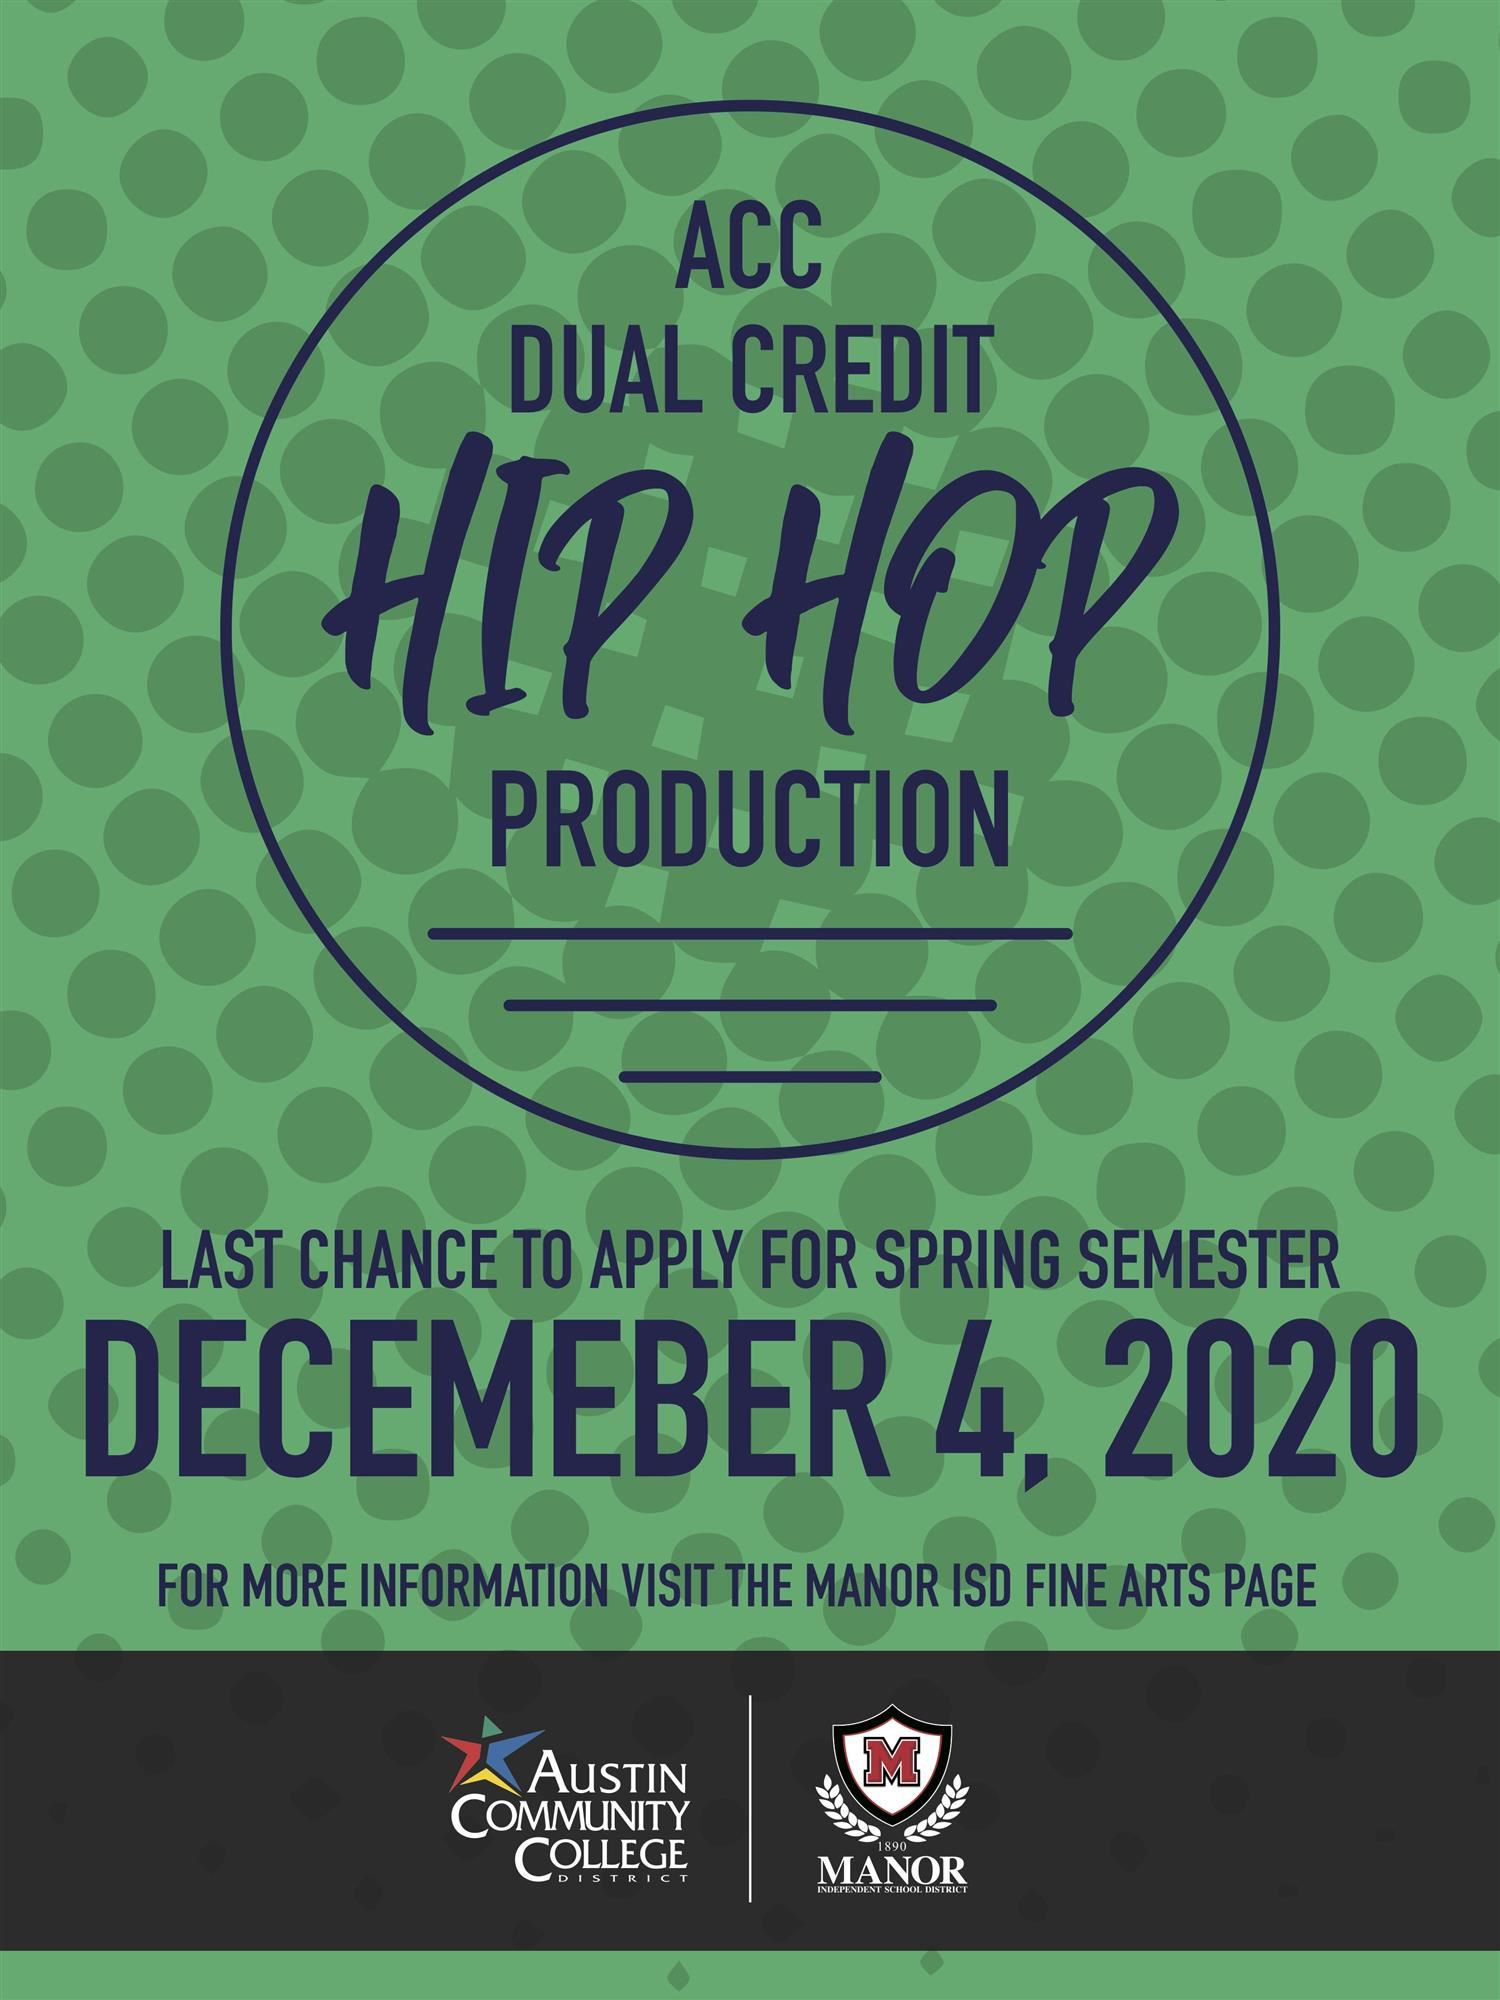 ACC Hip Hop Production